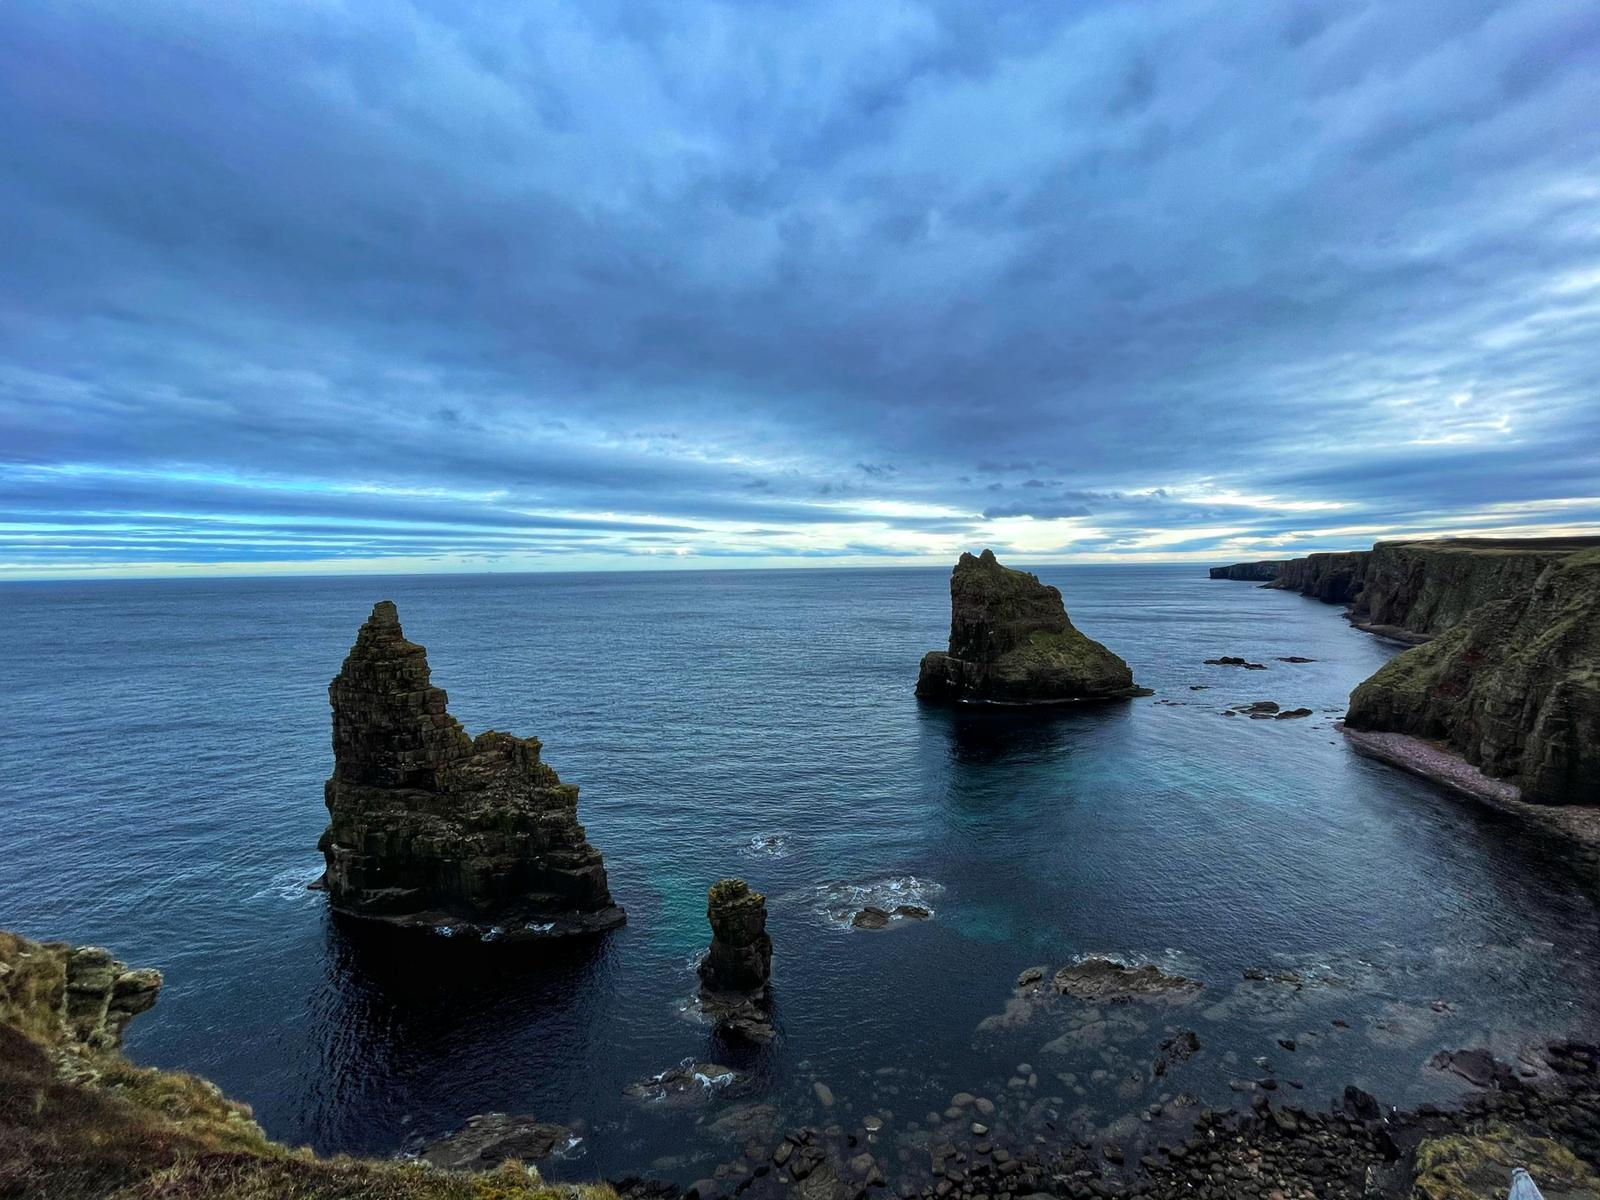 Two sea stacks at Duncansby head